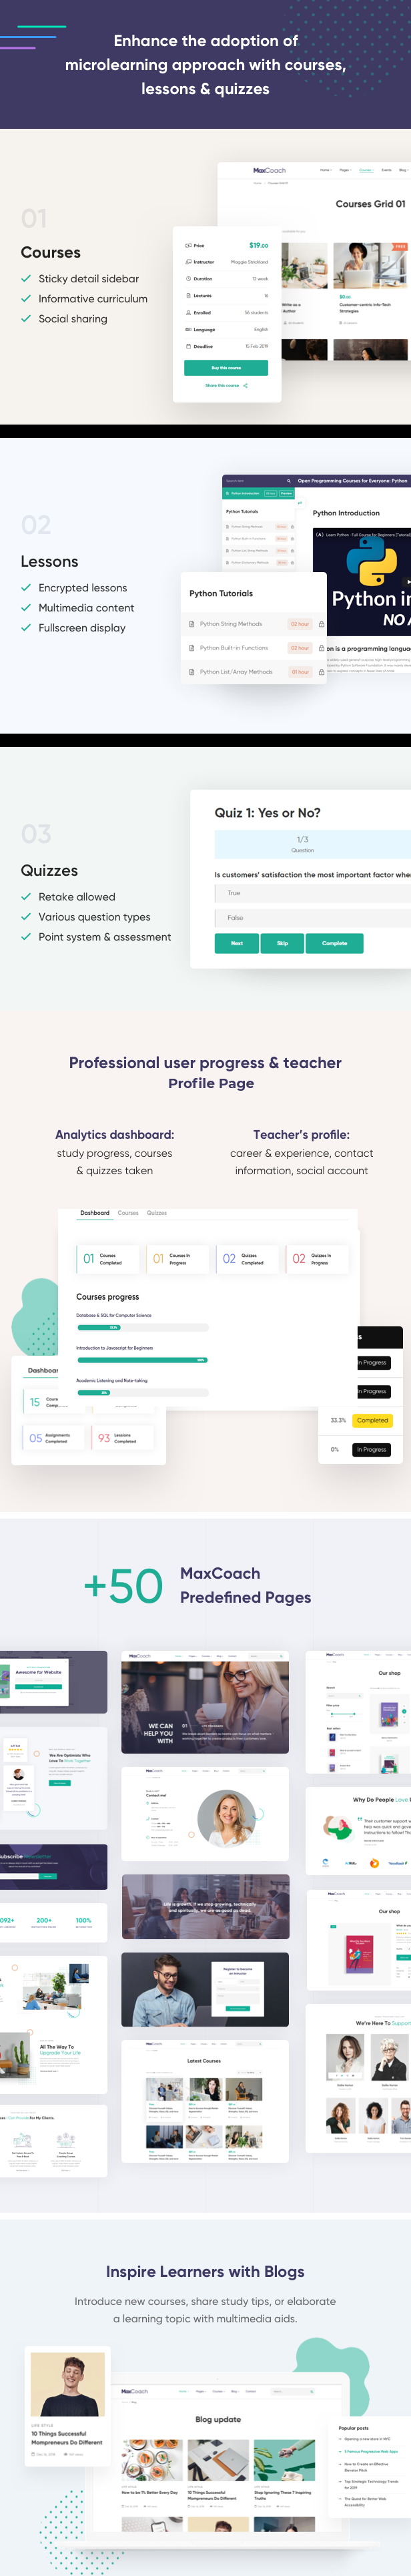 MaxCoach - Education Bootstrap 4 Template - 3